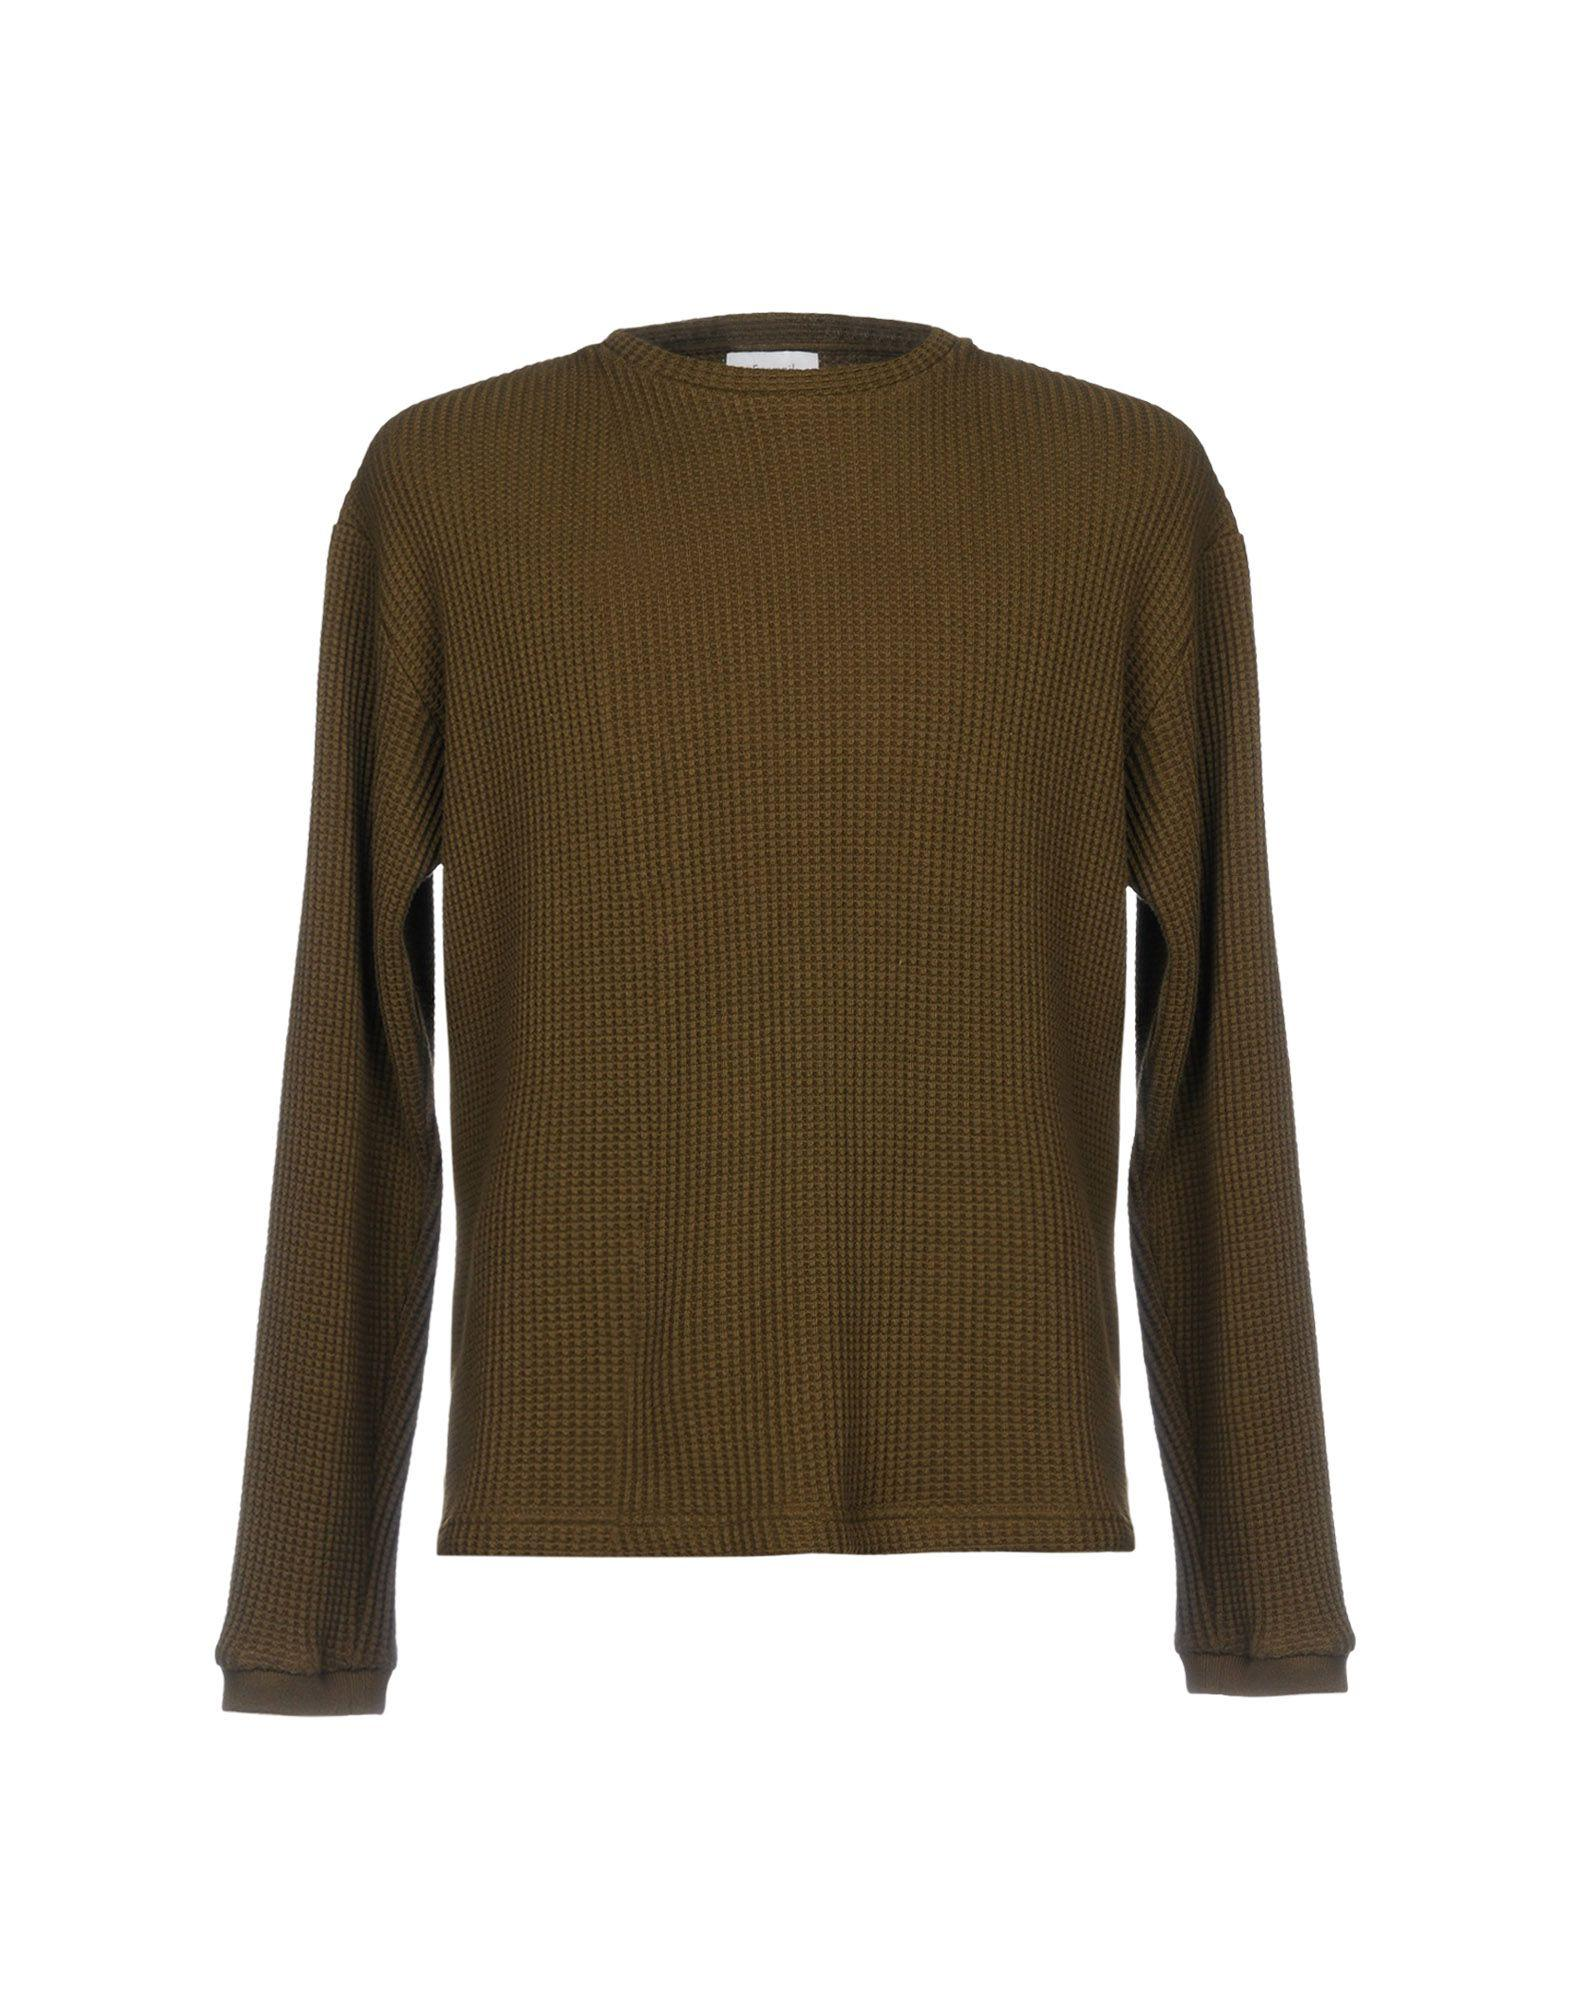 Fanmail Sweater In Military Green